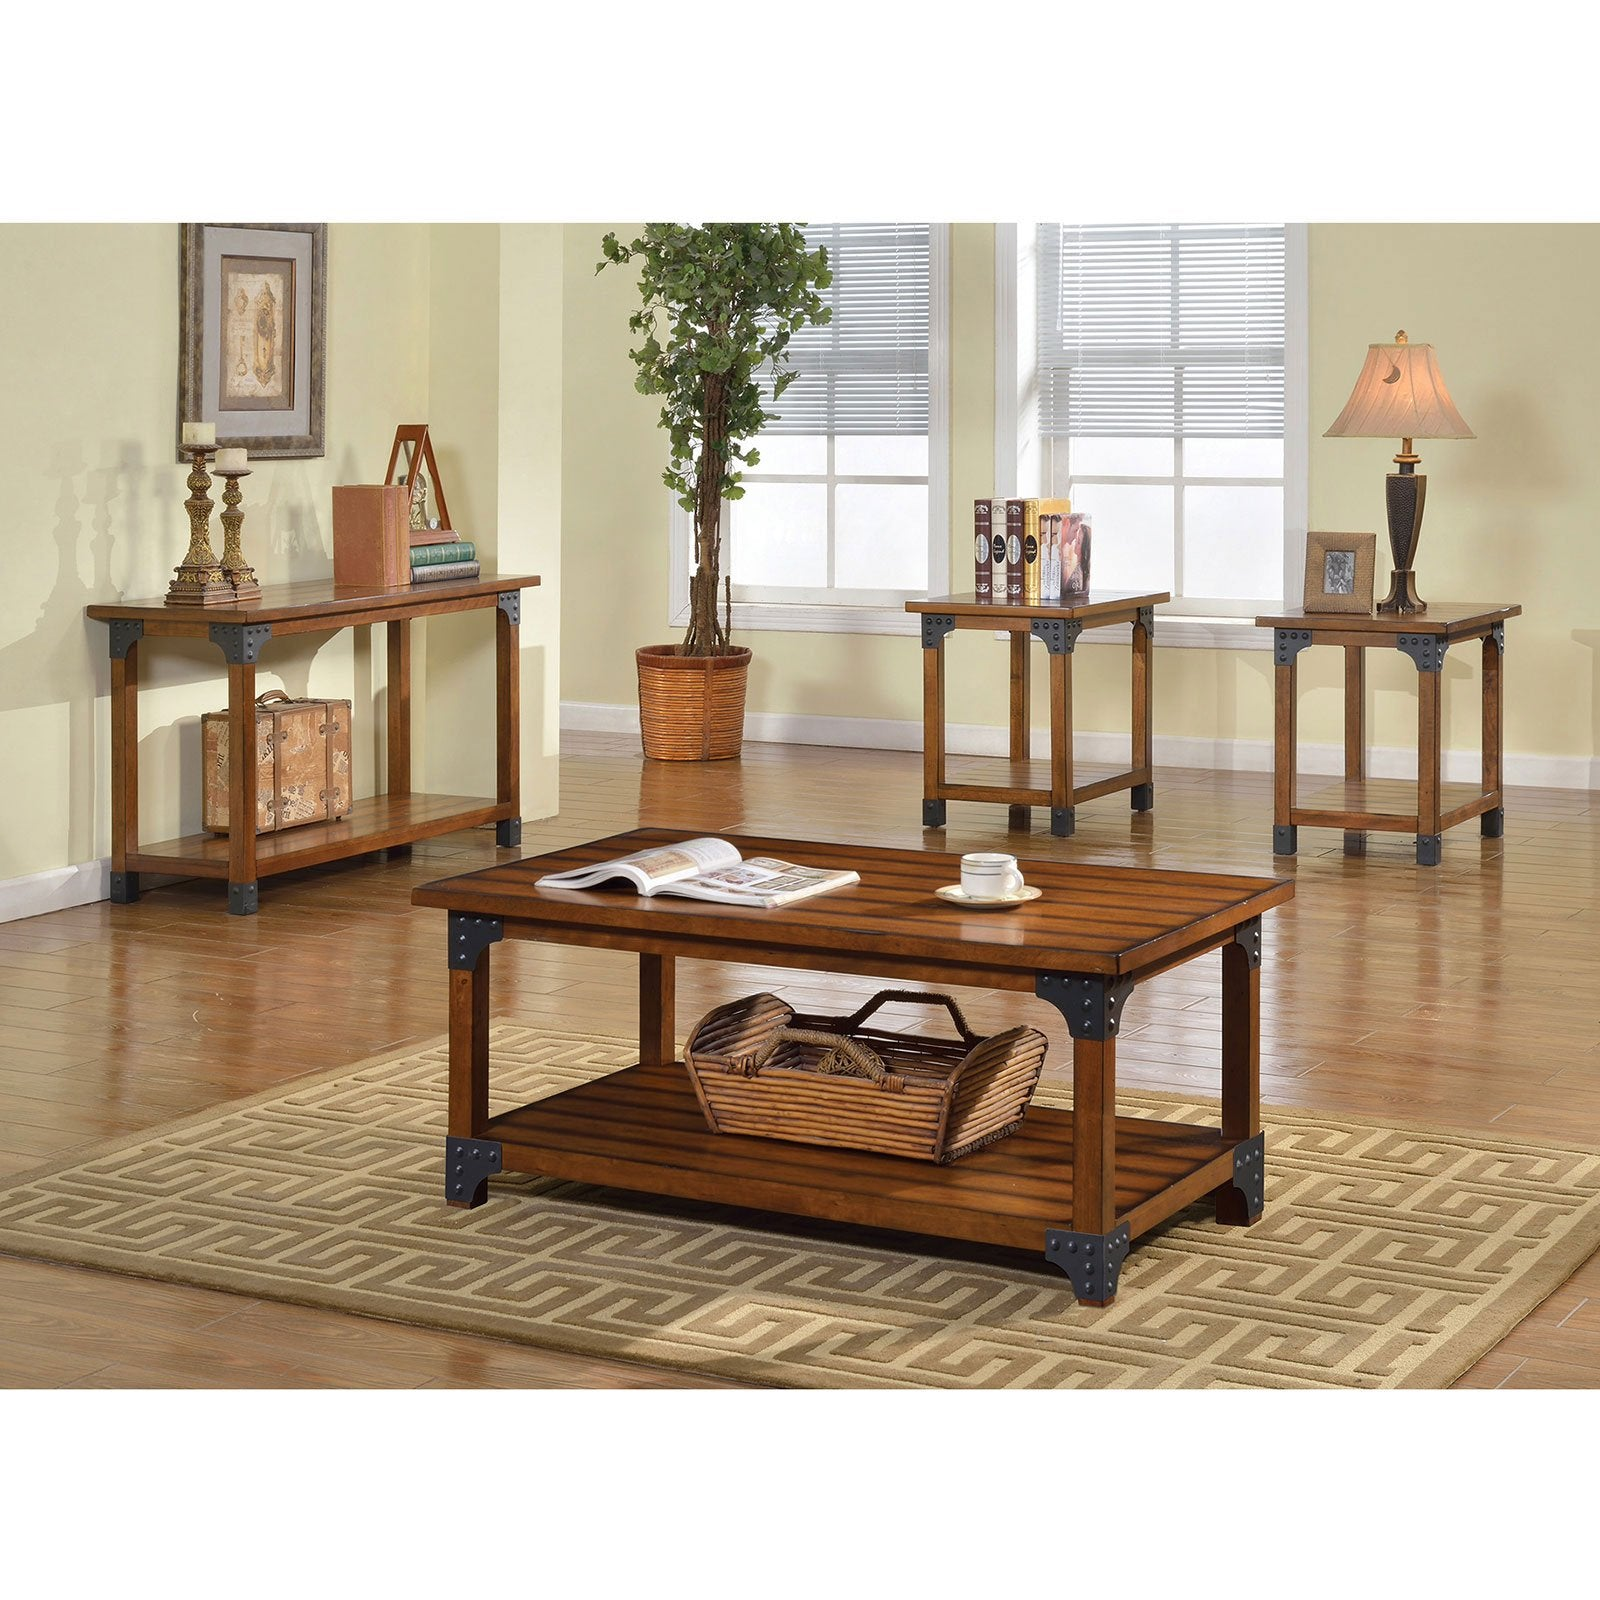 BOZEMAN 3 Pc. Table Set (Sofa Table Sold Separately) - InteriorDesignsToGo.com